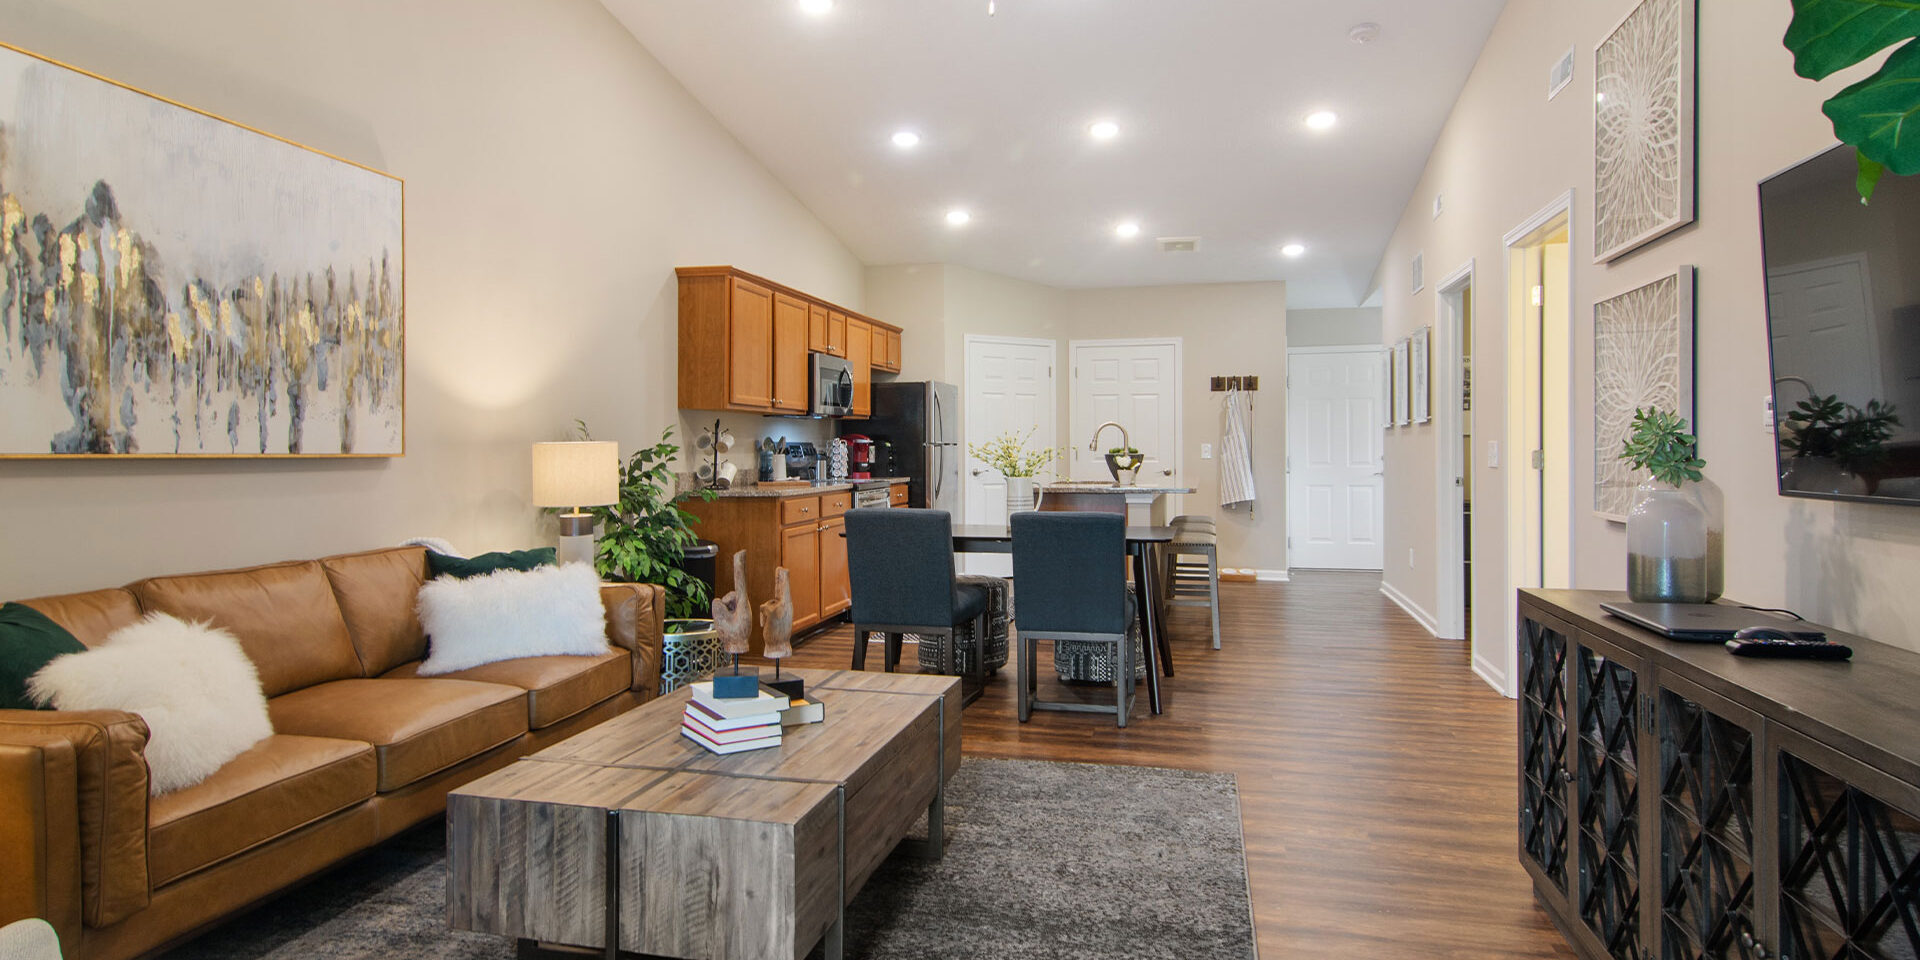 Explore a Redwood Apartment via Virtual Tour